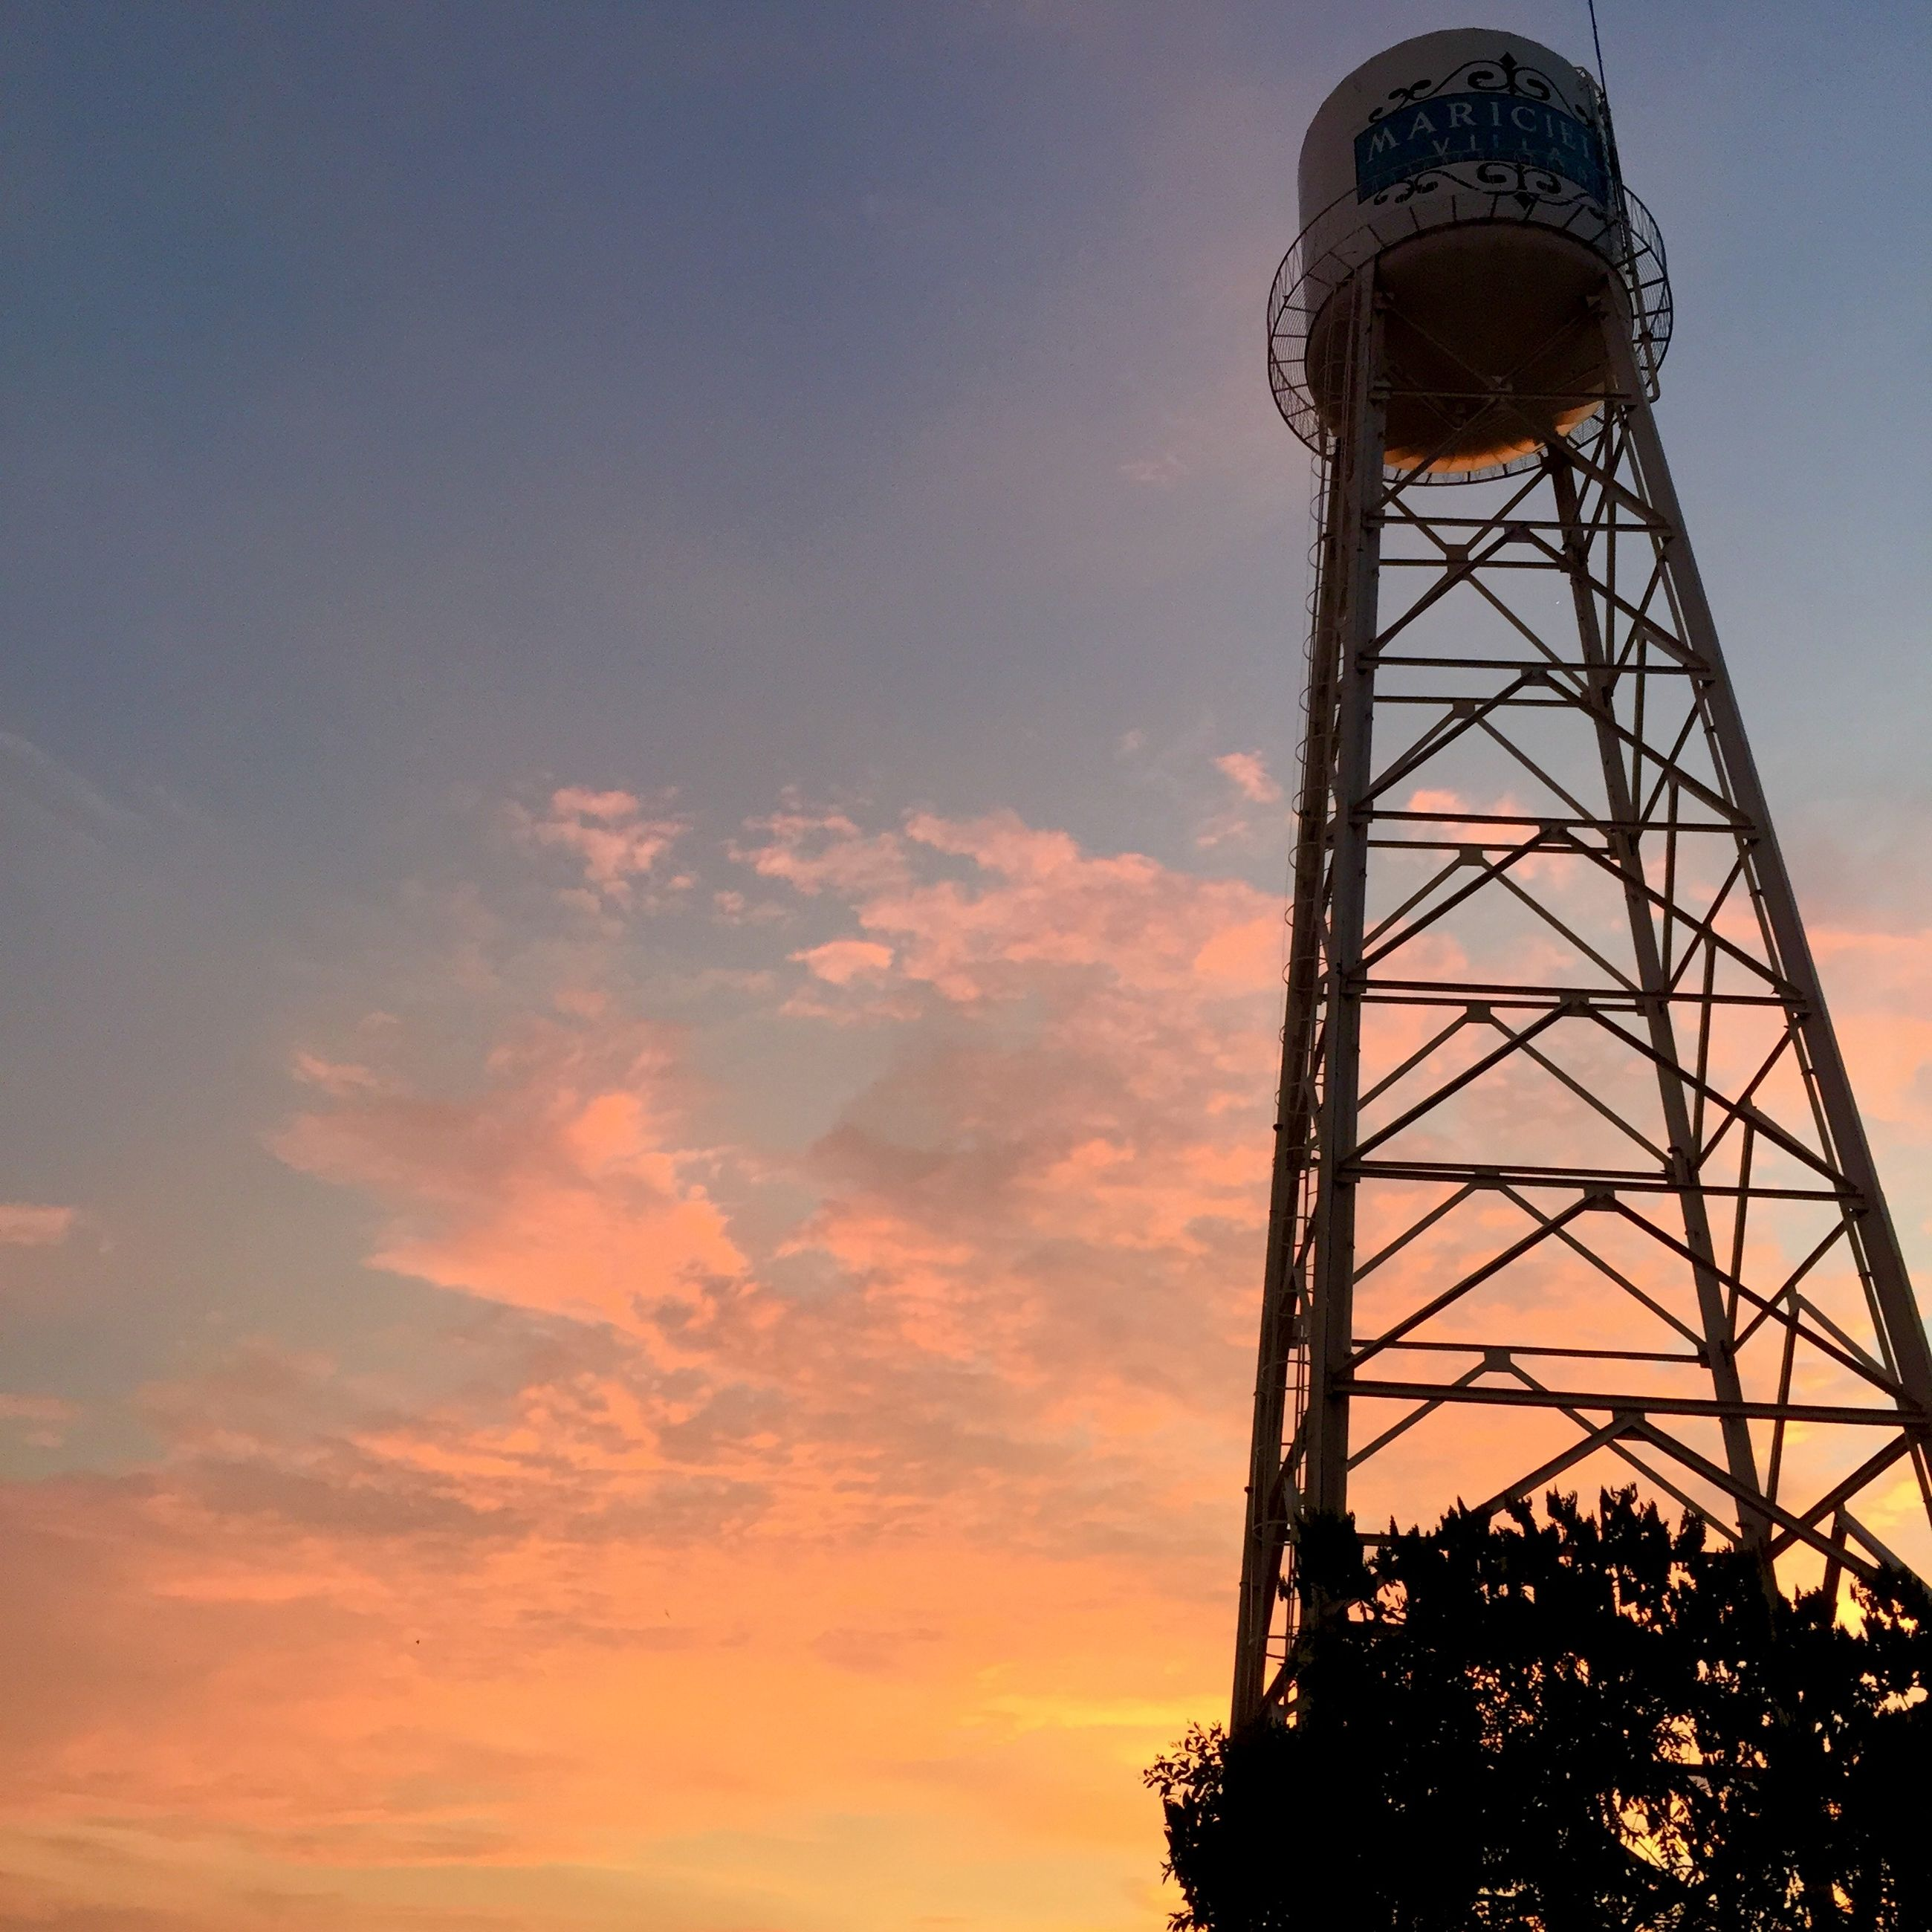 low angle view, sky, built structure, architecture, sunset, tower, cloud - sky, silhouette, tall - high, dusk, building exterior, amusement park, cloud, outdoors, orange color, metal, communications tower, no people, cloudy, nature